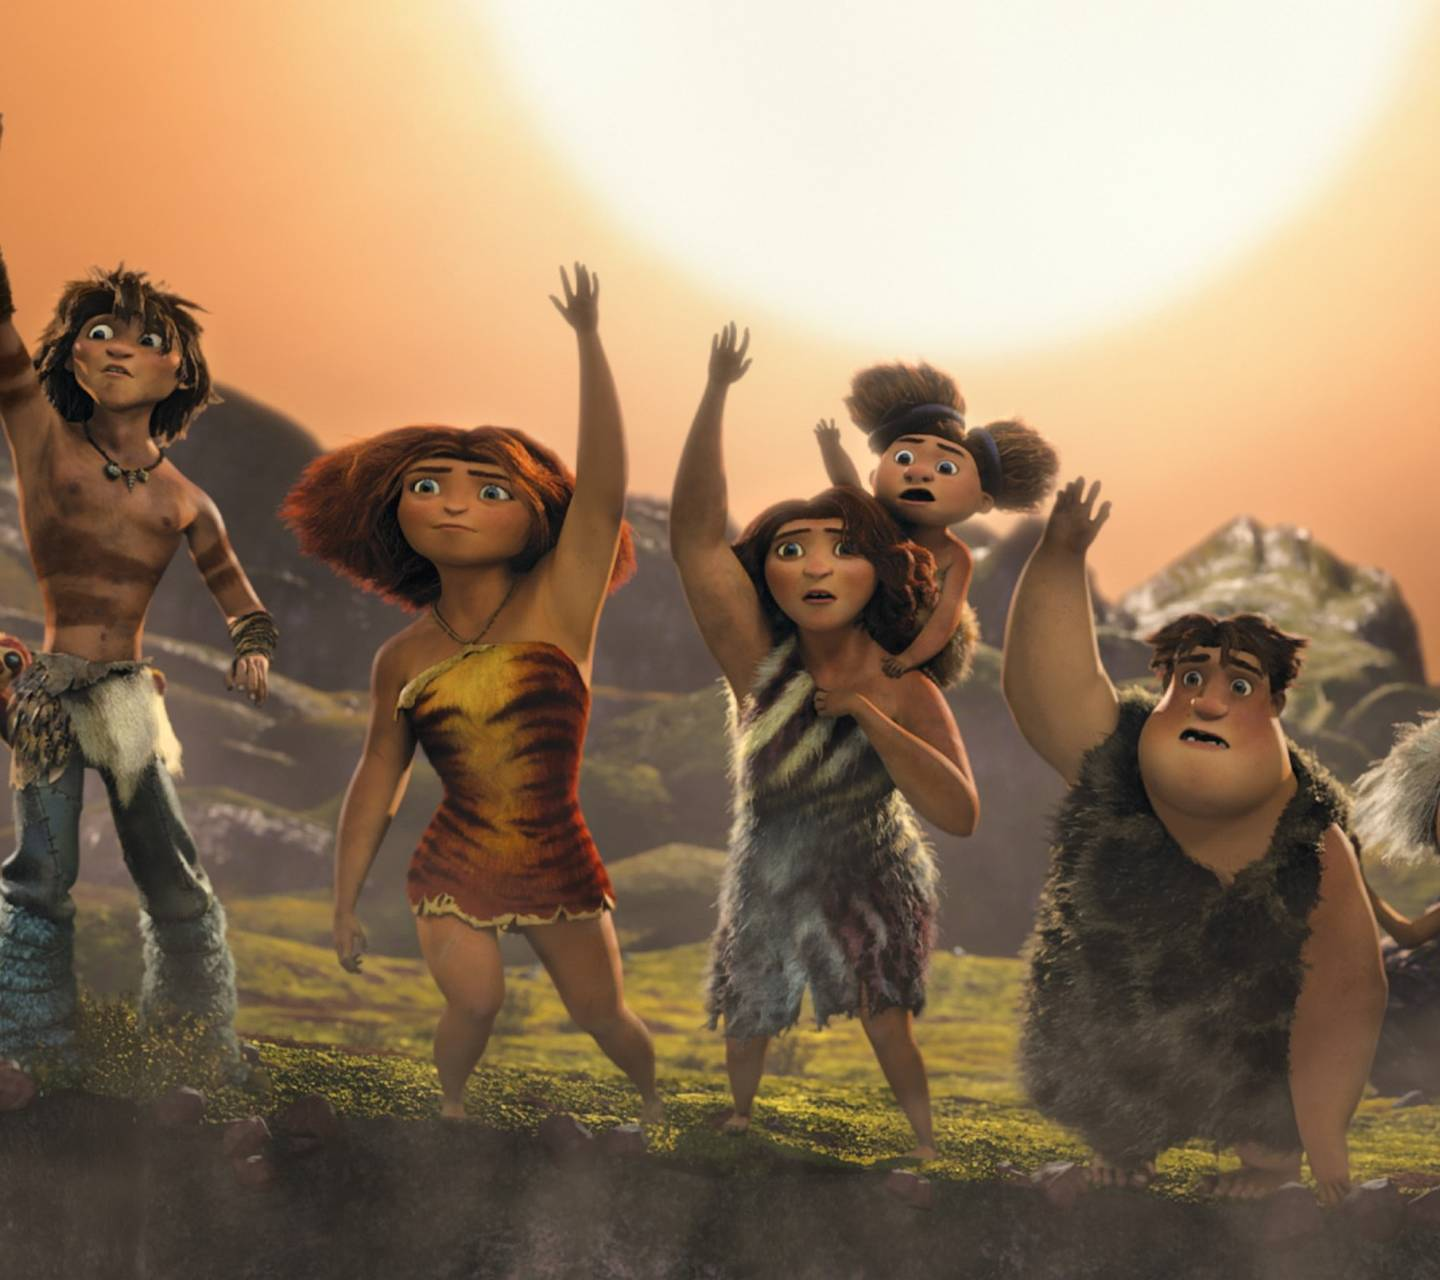 The Croods 2 Movie: The Croods 2 Wallpaper By Andrekassep